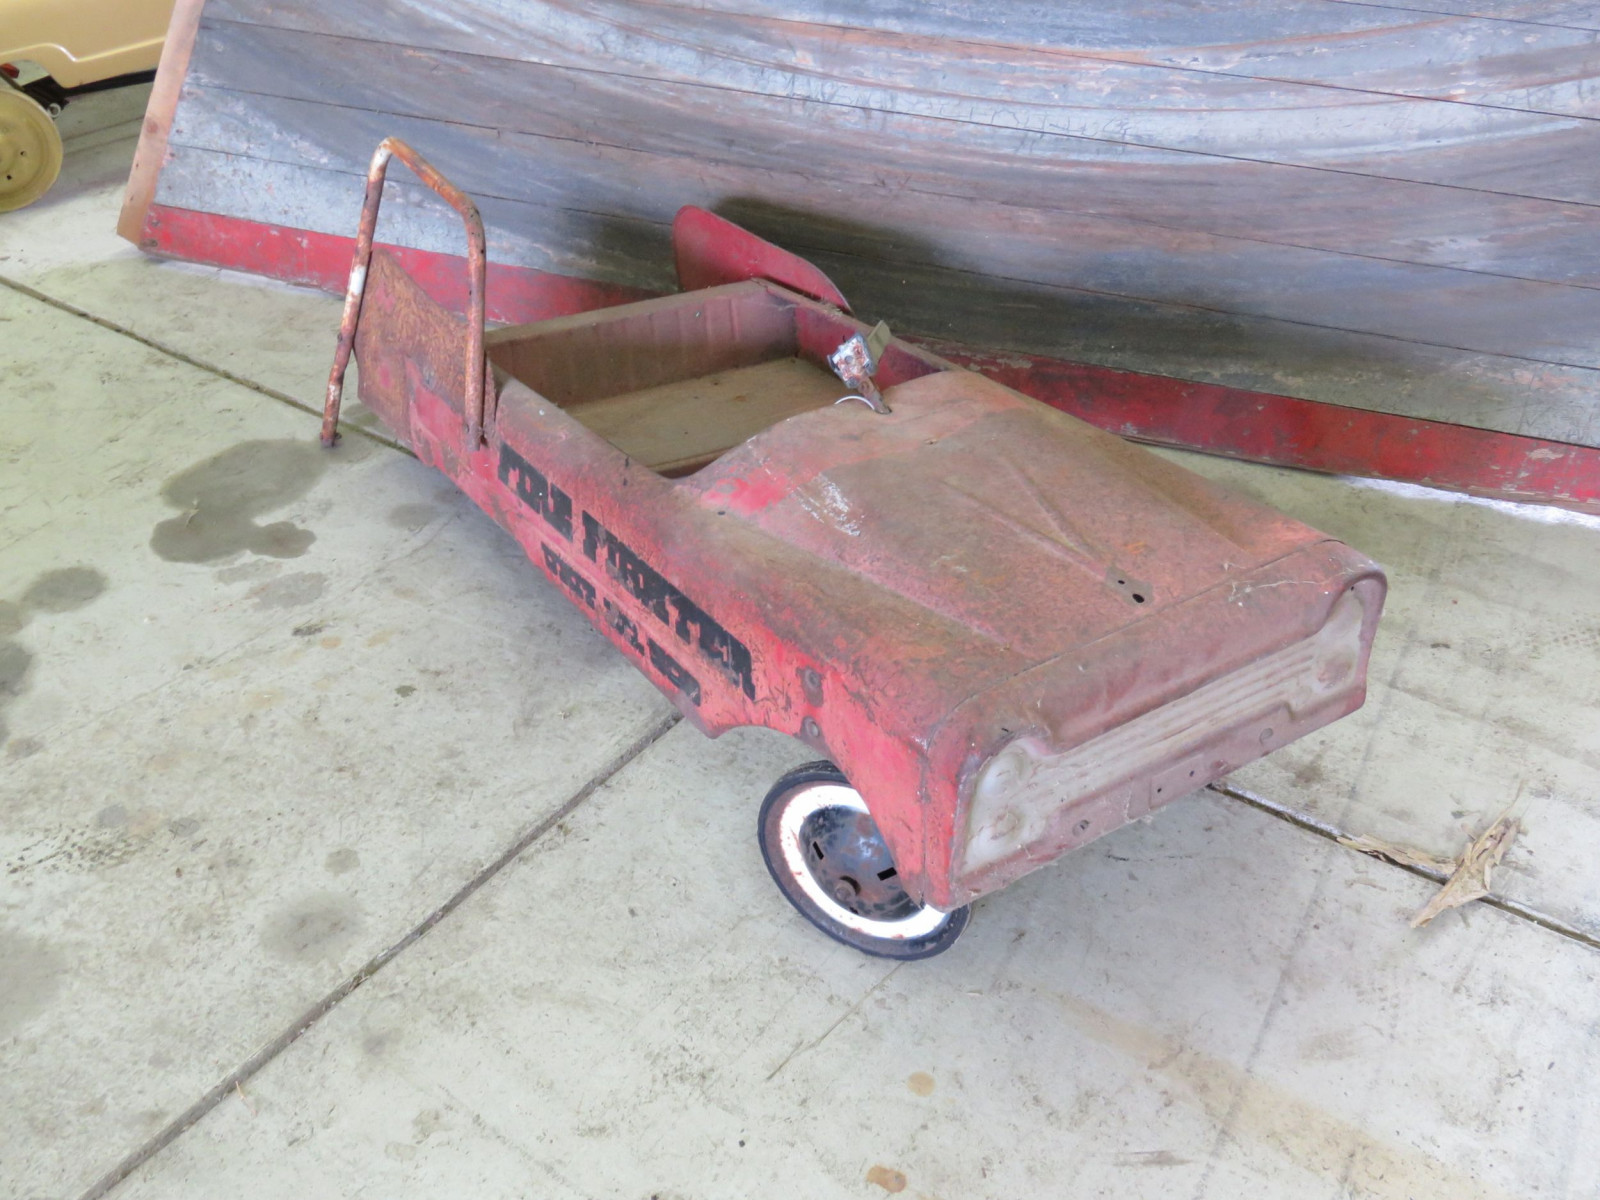 Murray Fire fighter Project Pedal Car - Image 1